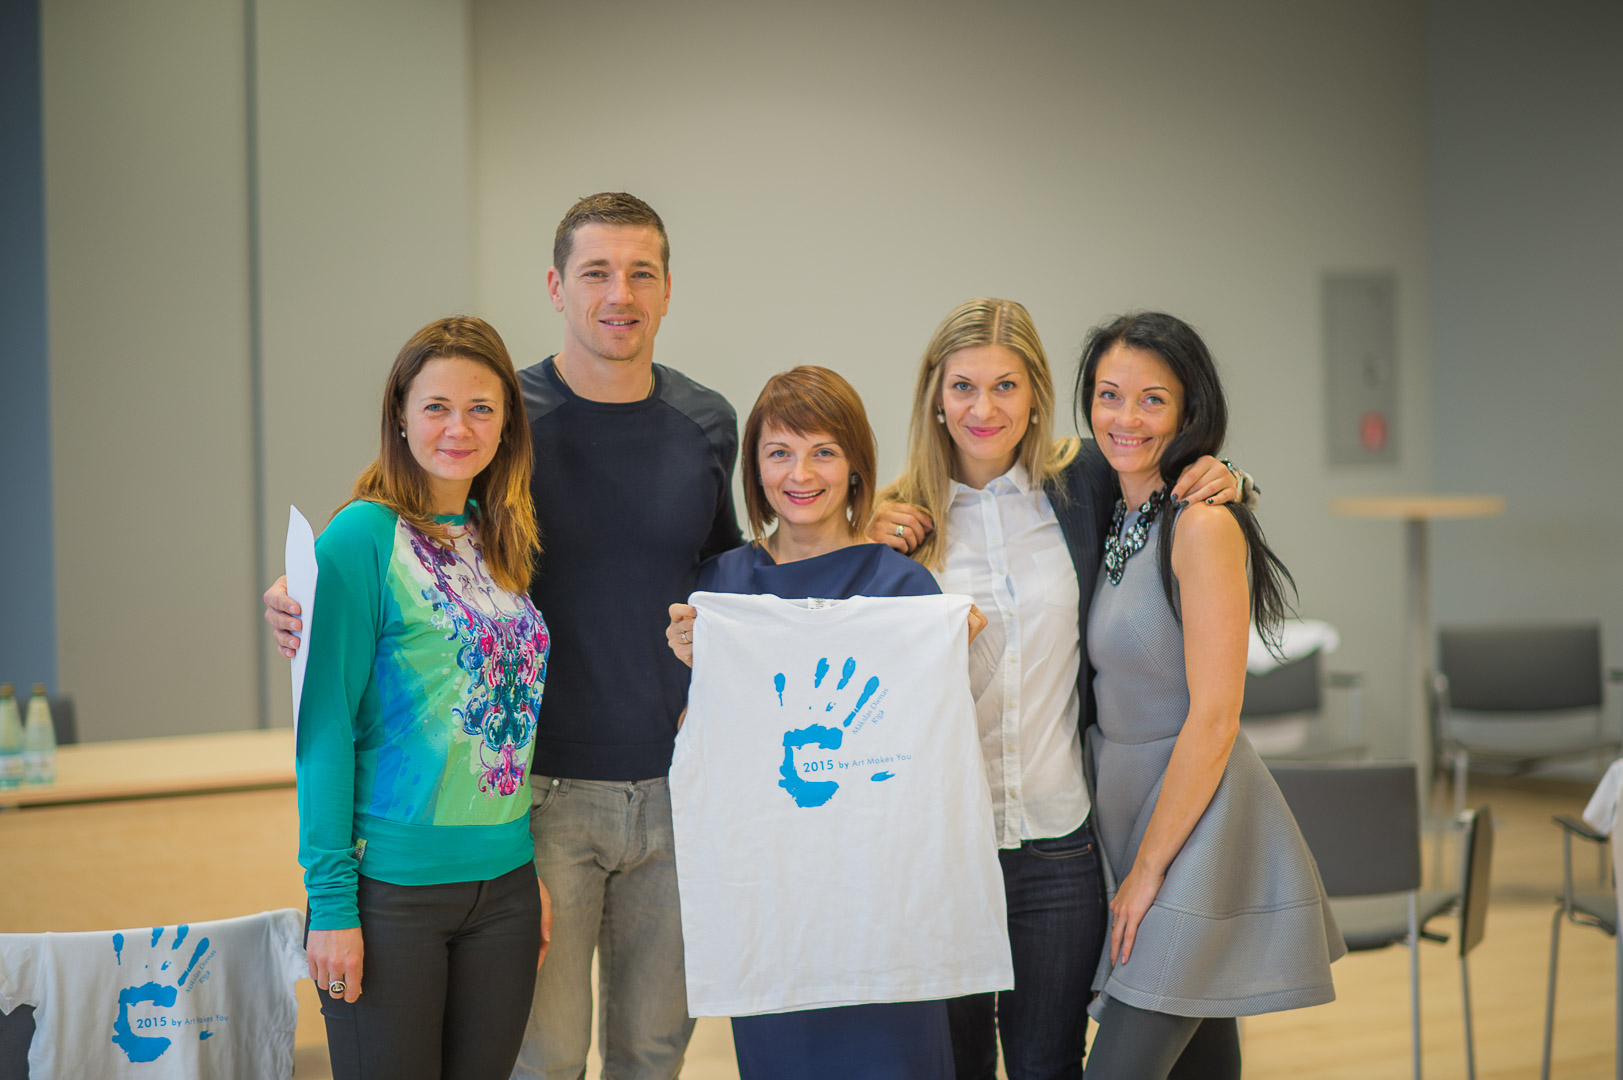 Our amazing Team in Latvia!